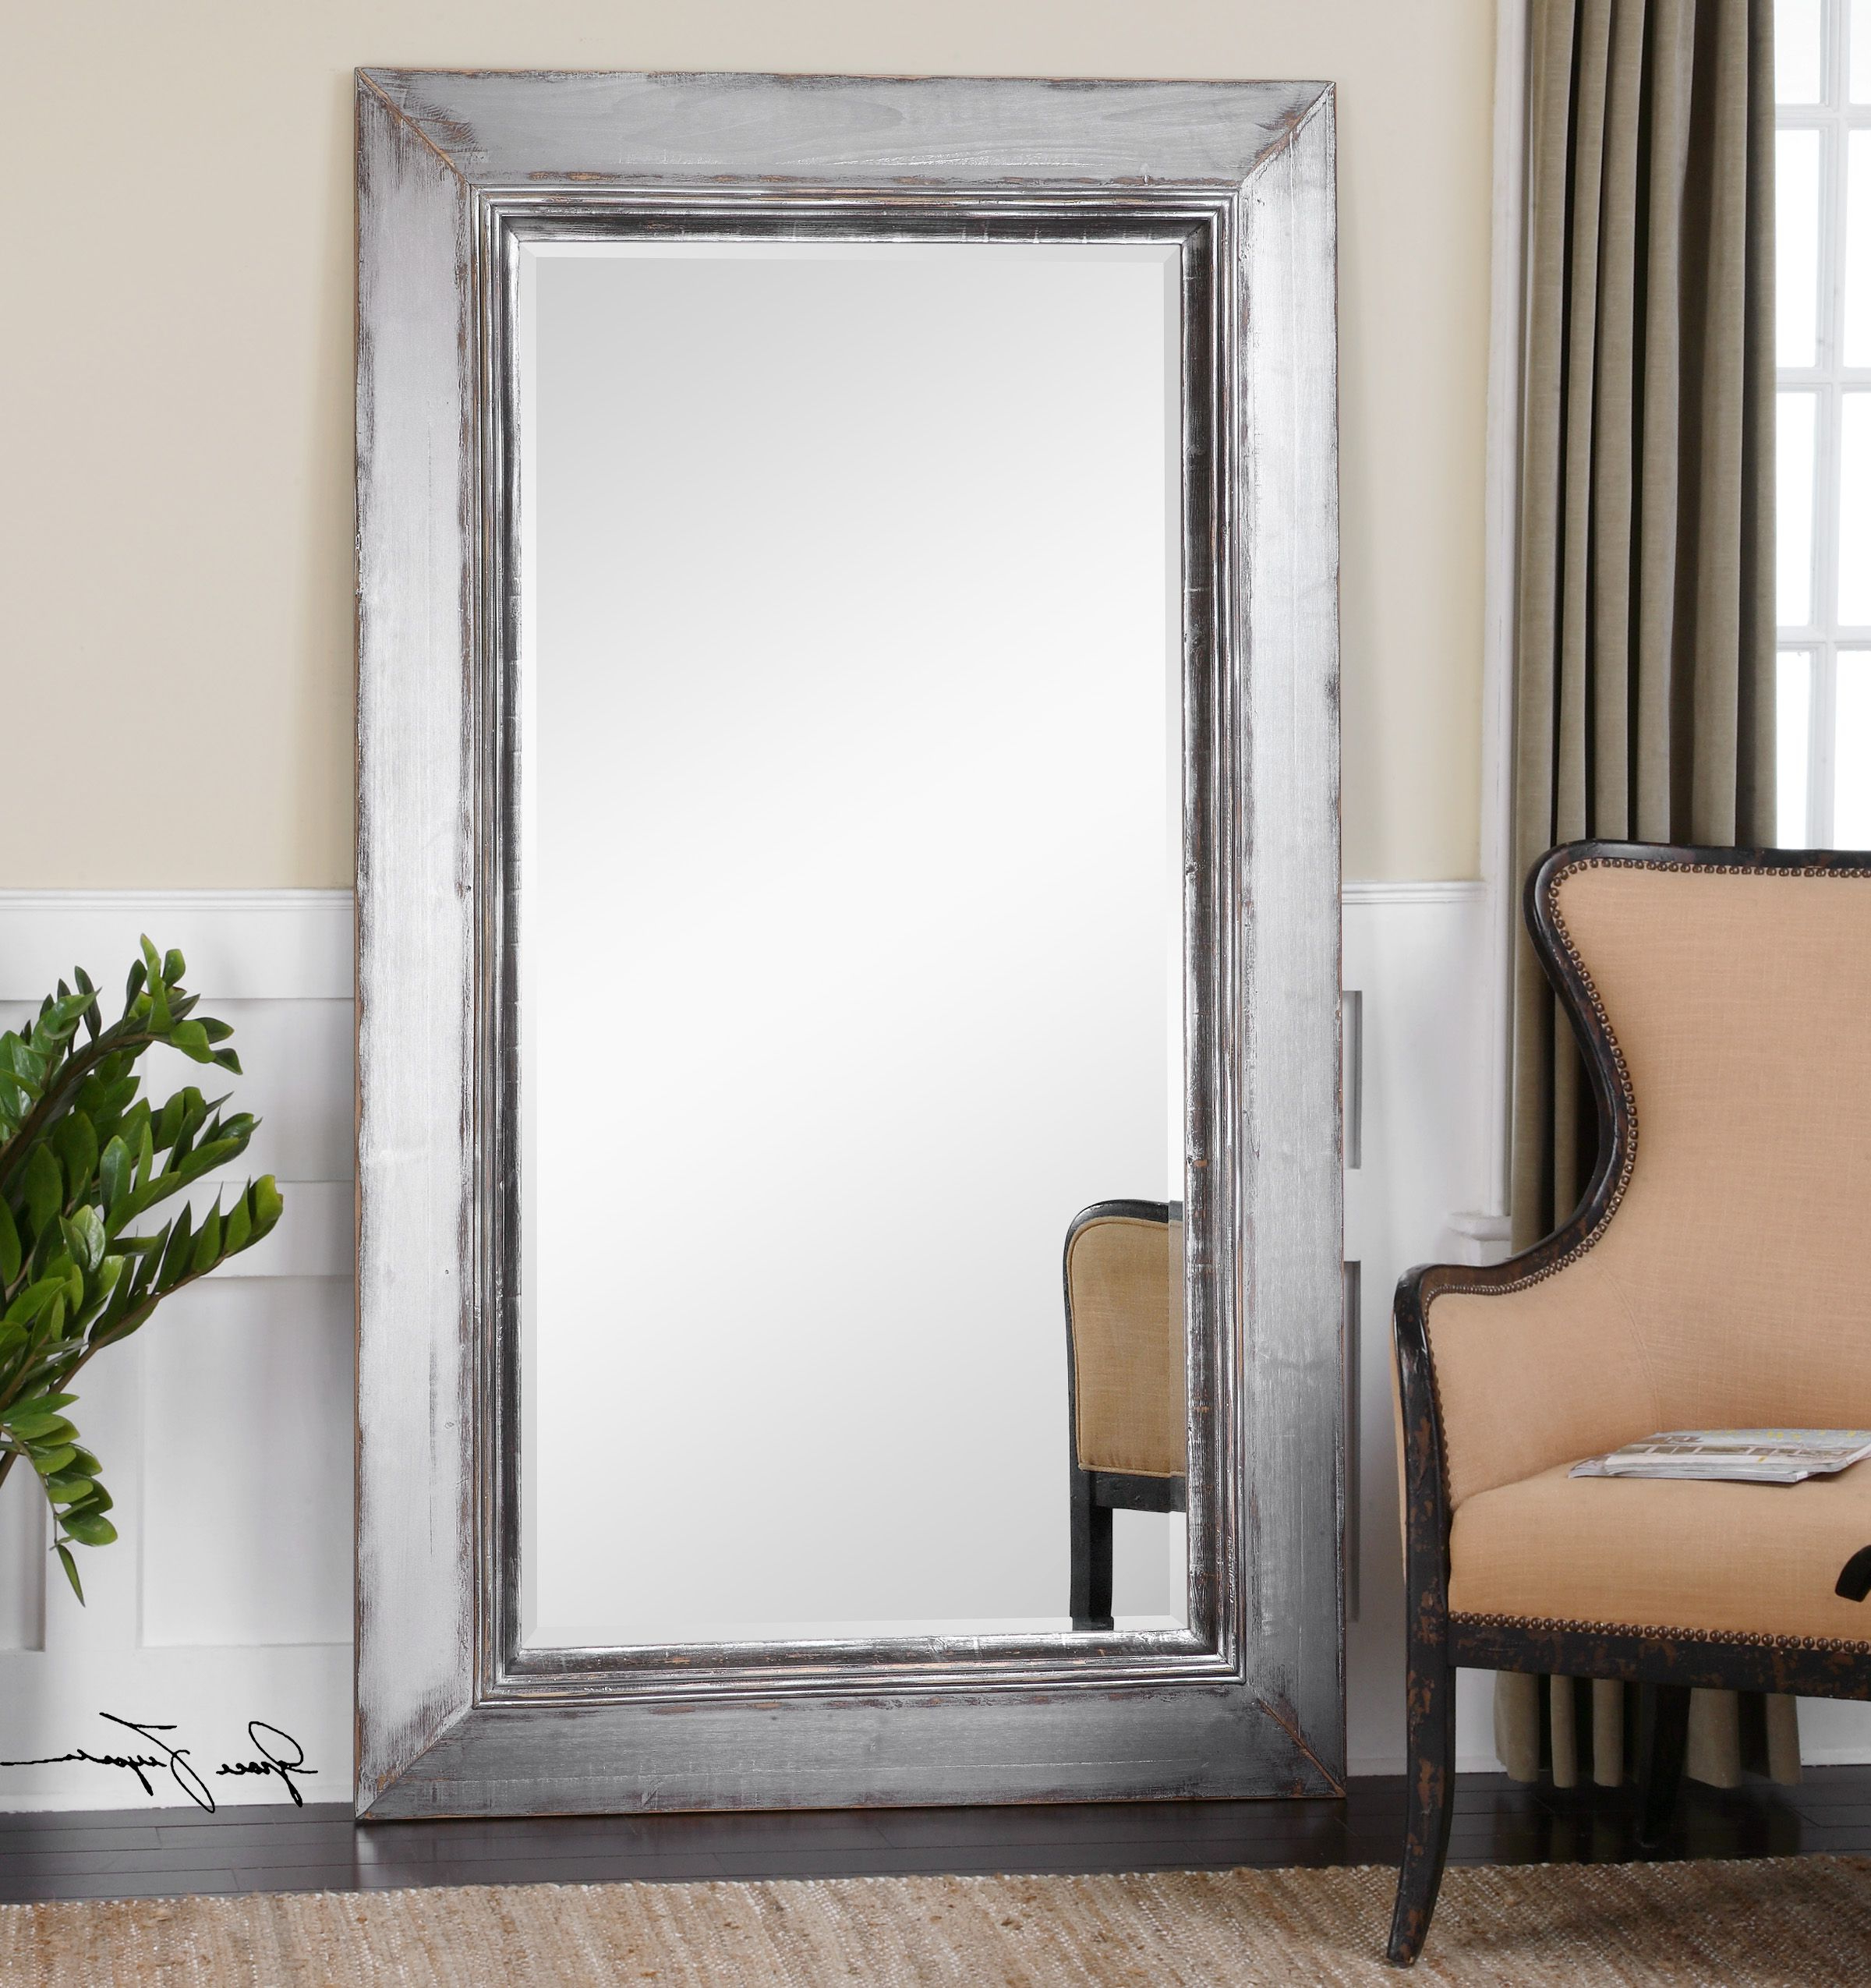 How To Secure A Leaning Mirror In Favorite Leaning Mirrors (View 6 of 20)